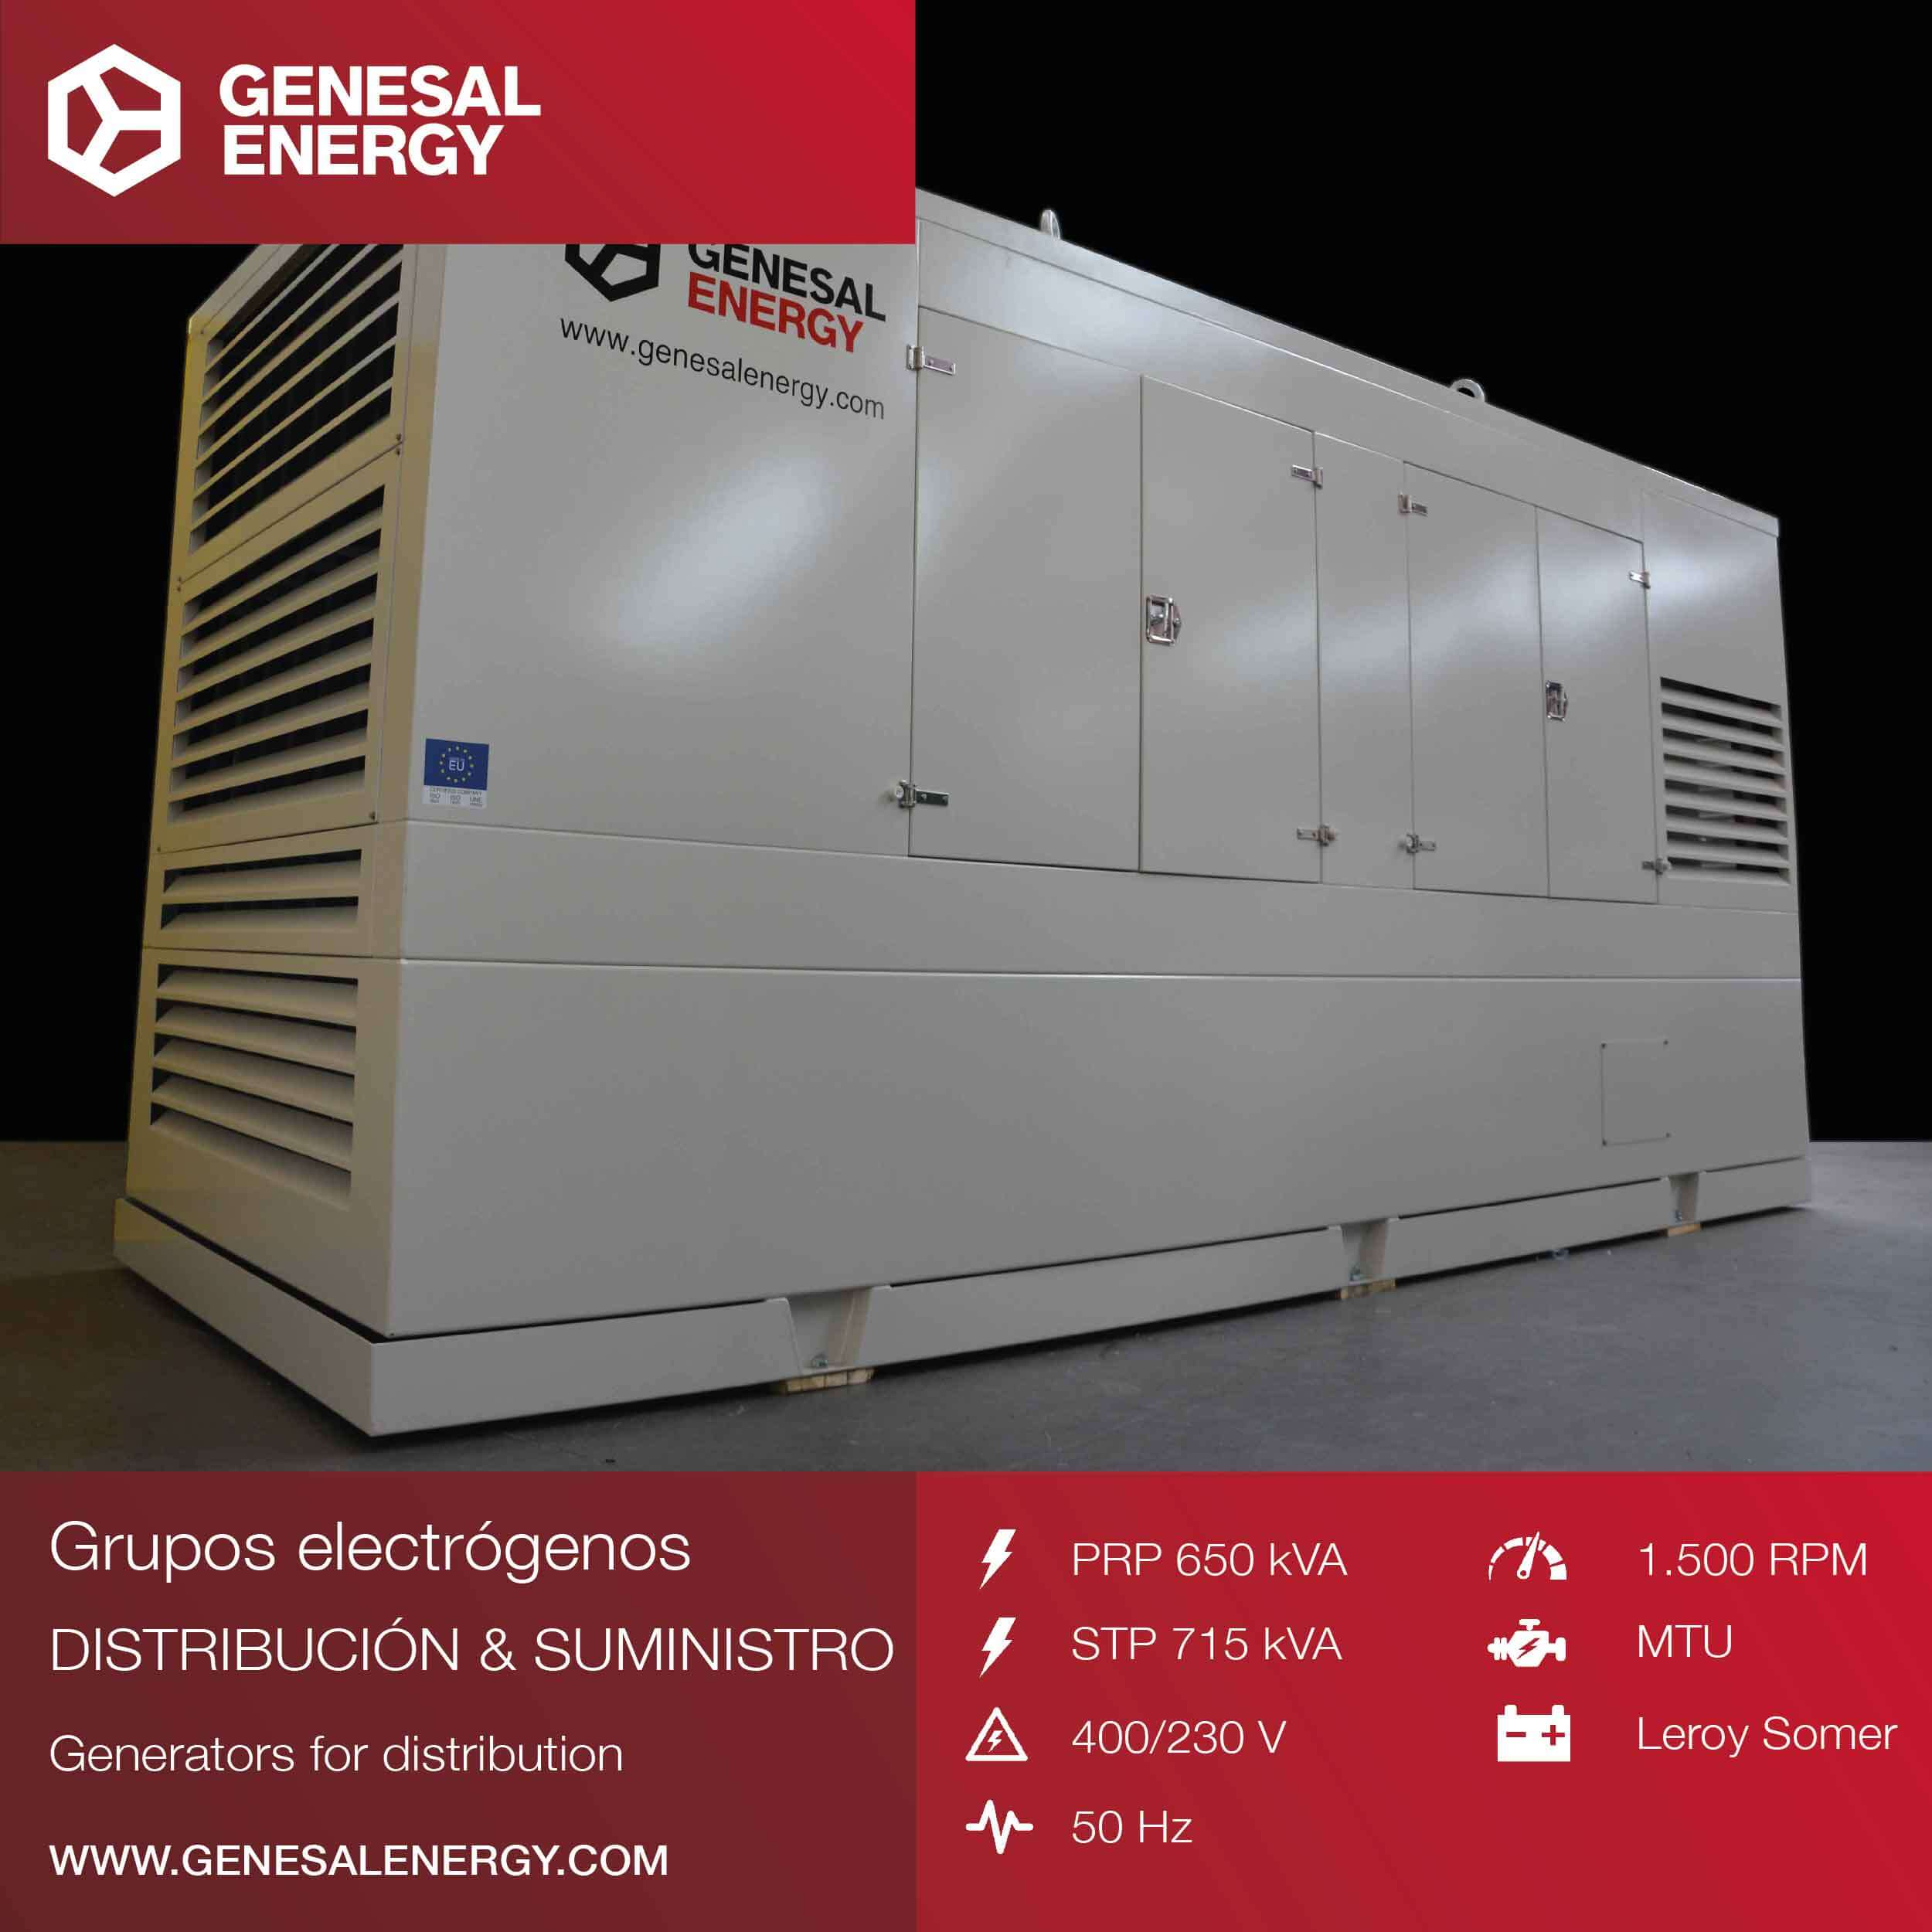 Emergency Gensets for substation Lastva in Montenegro